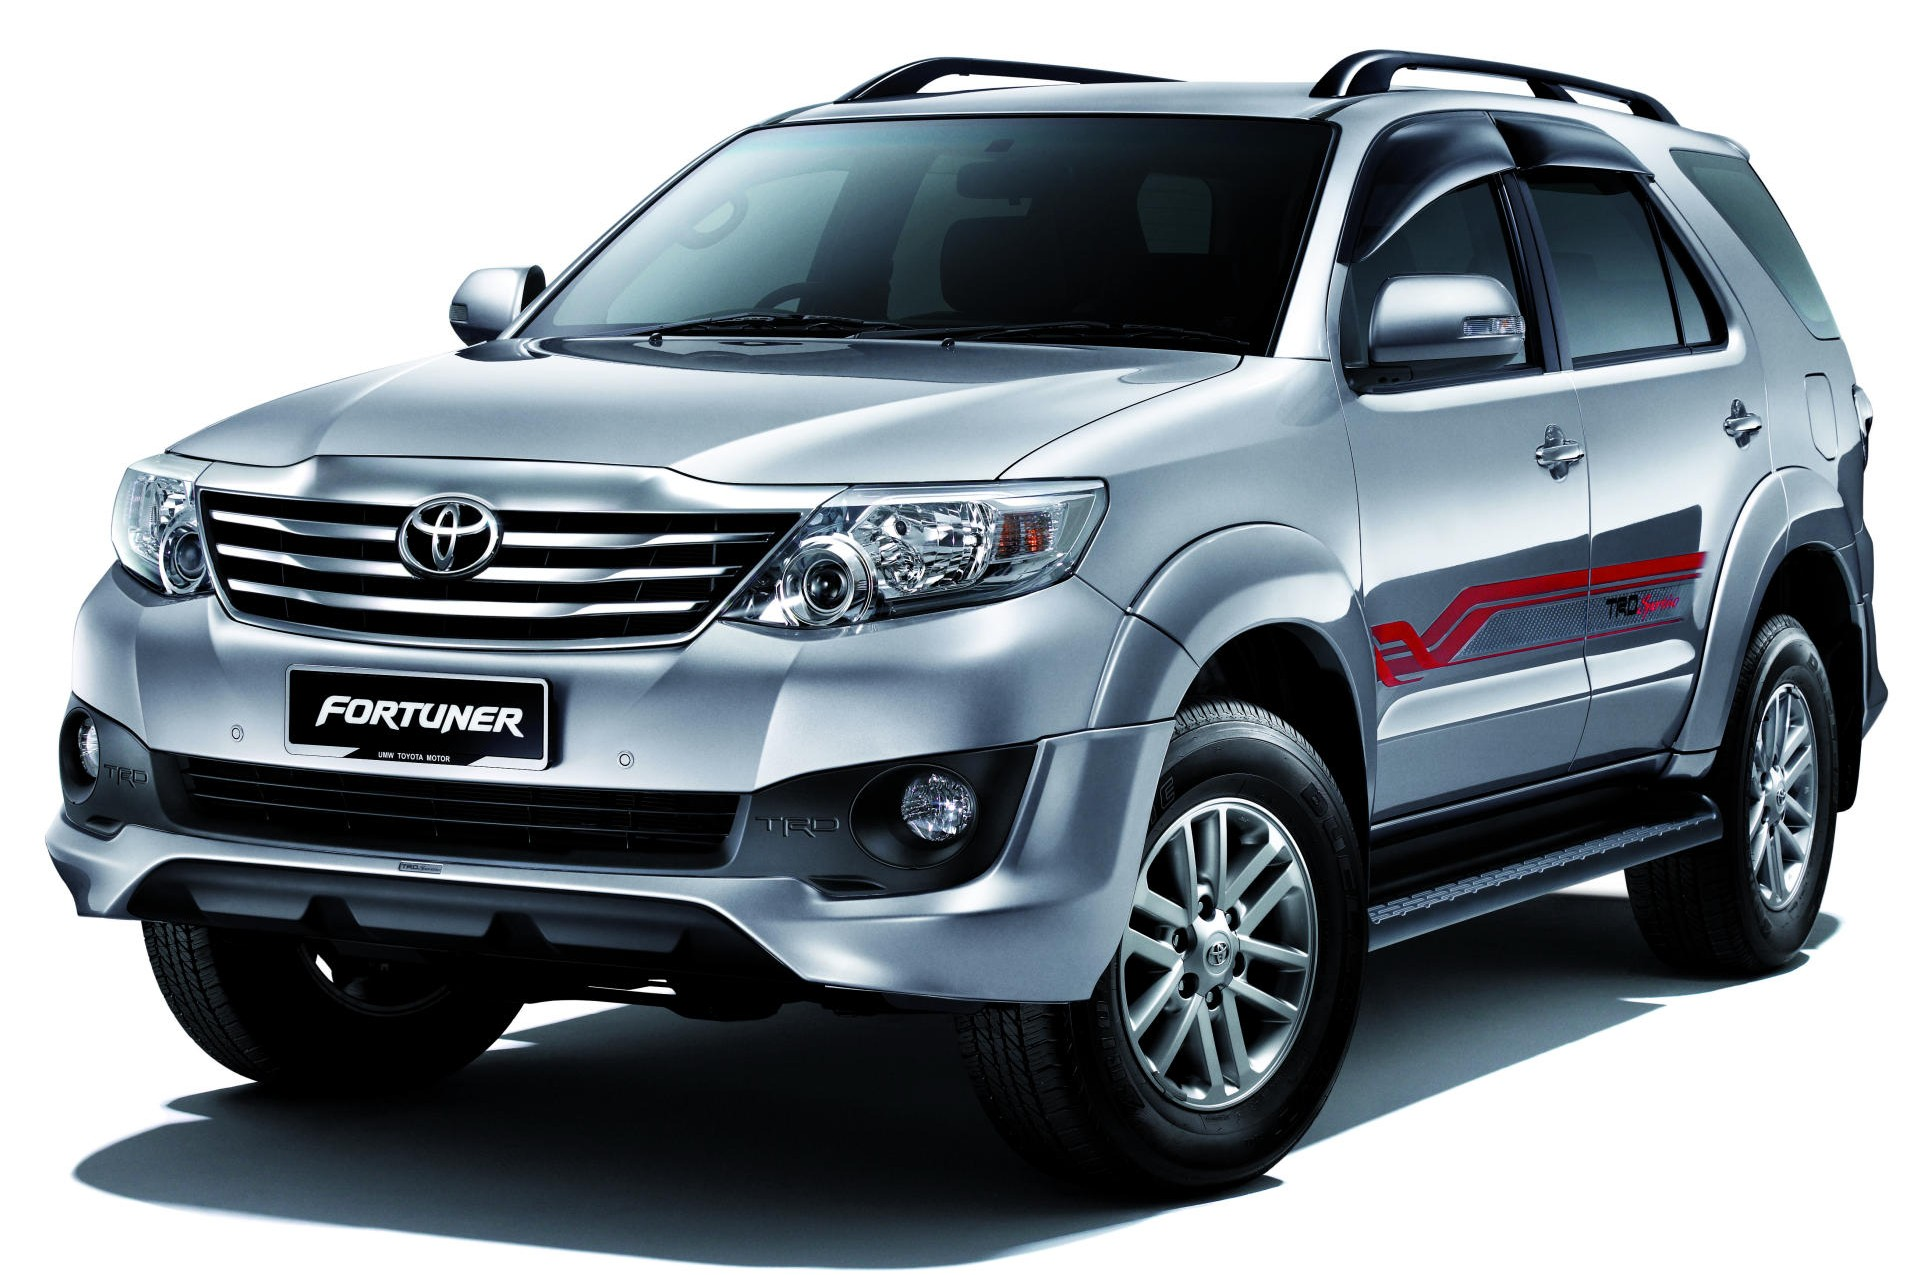 toyota fortuner facelift launched  u2013 from rm168k to rm182k paul tan